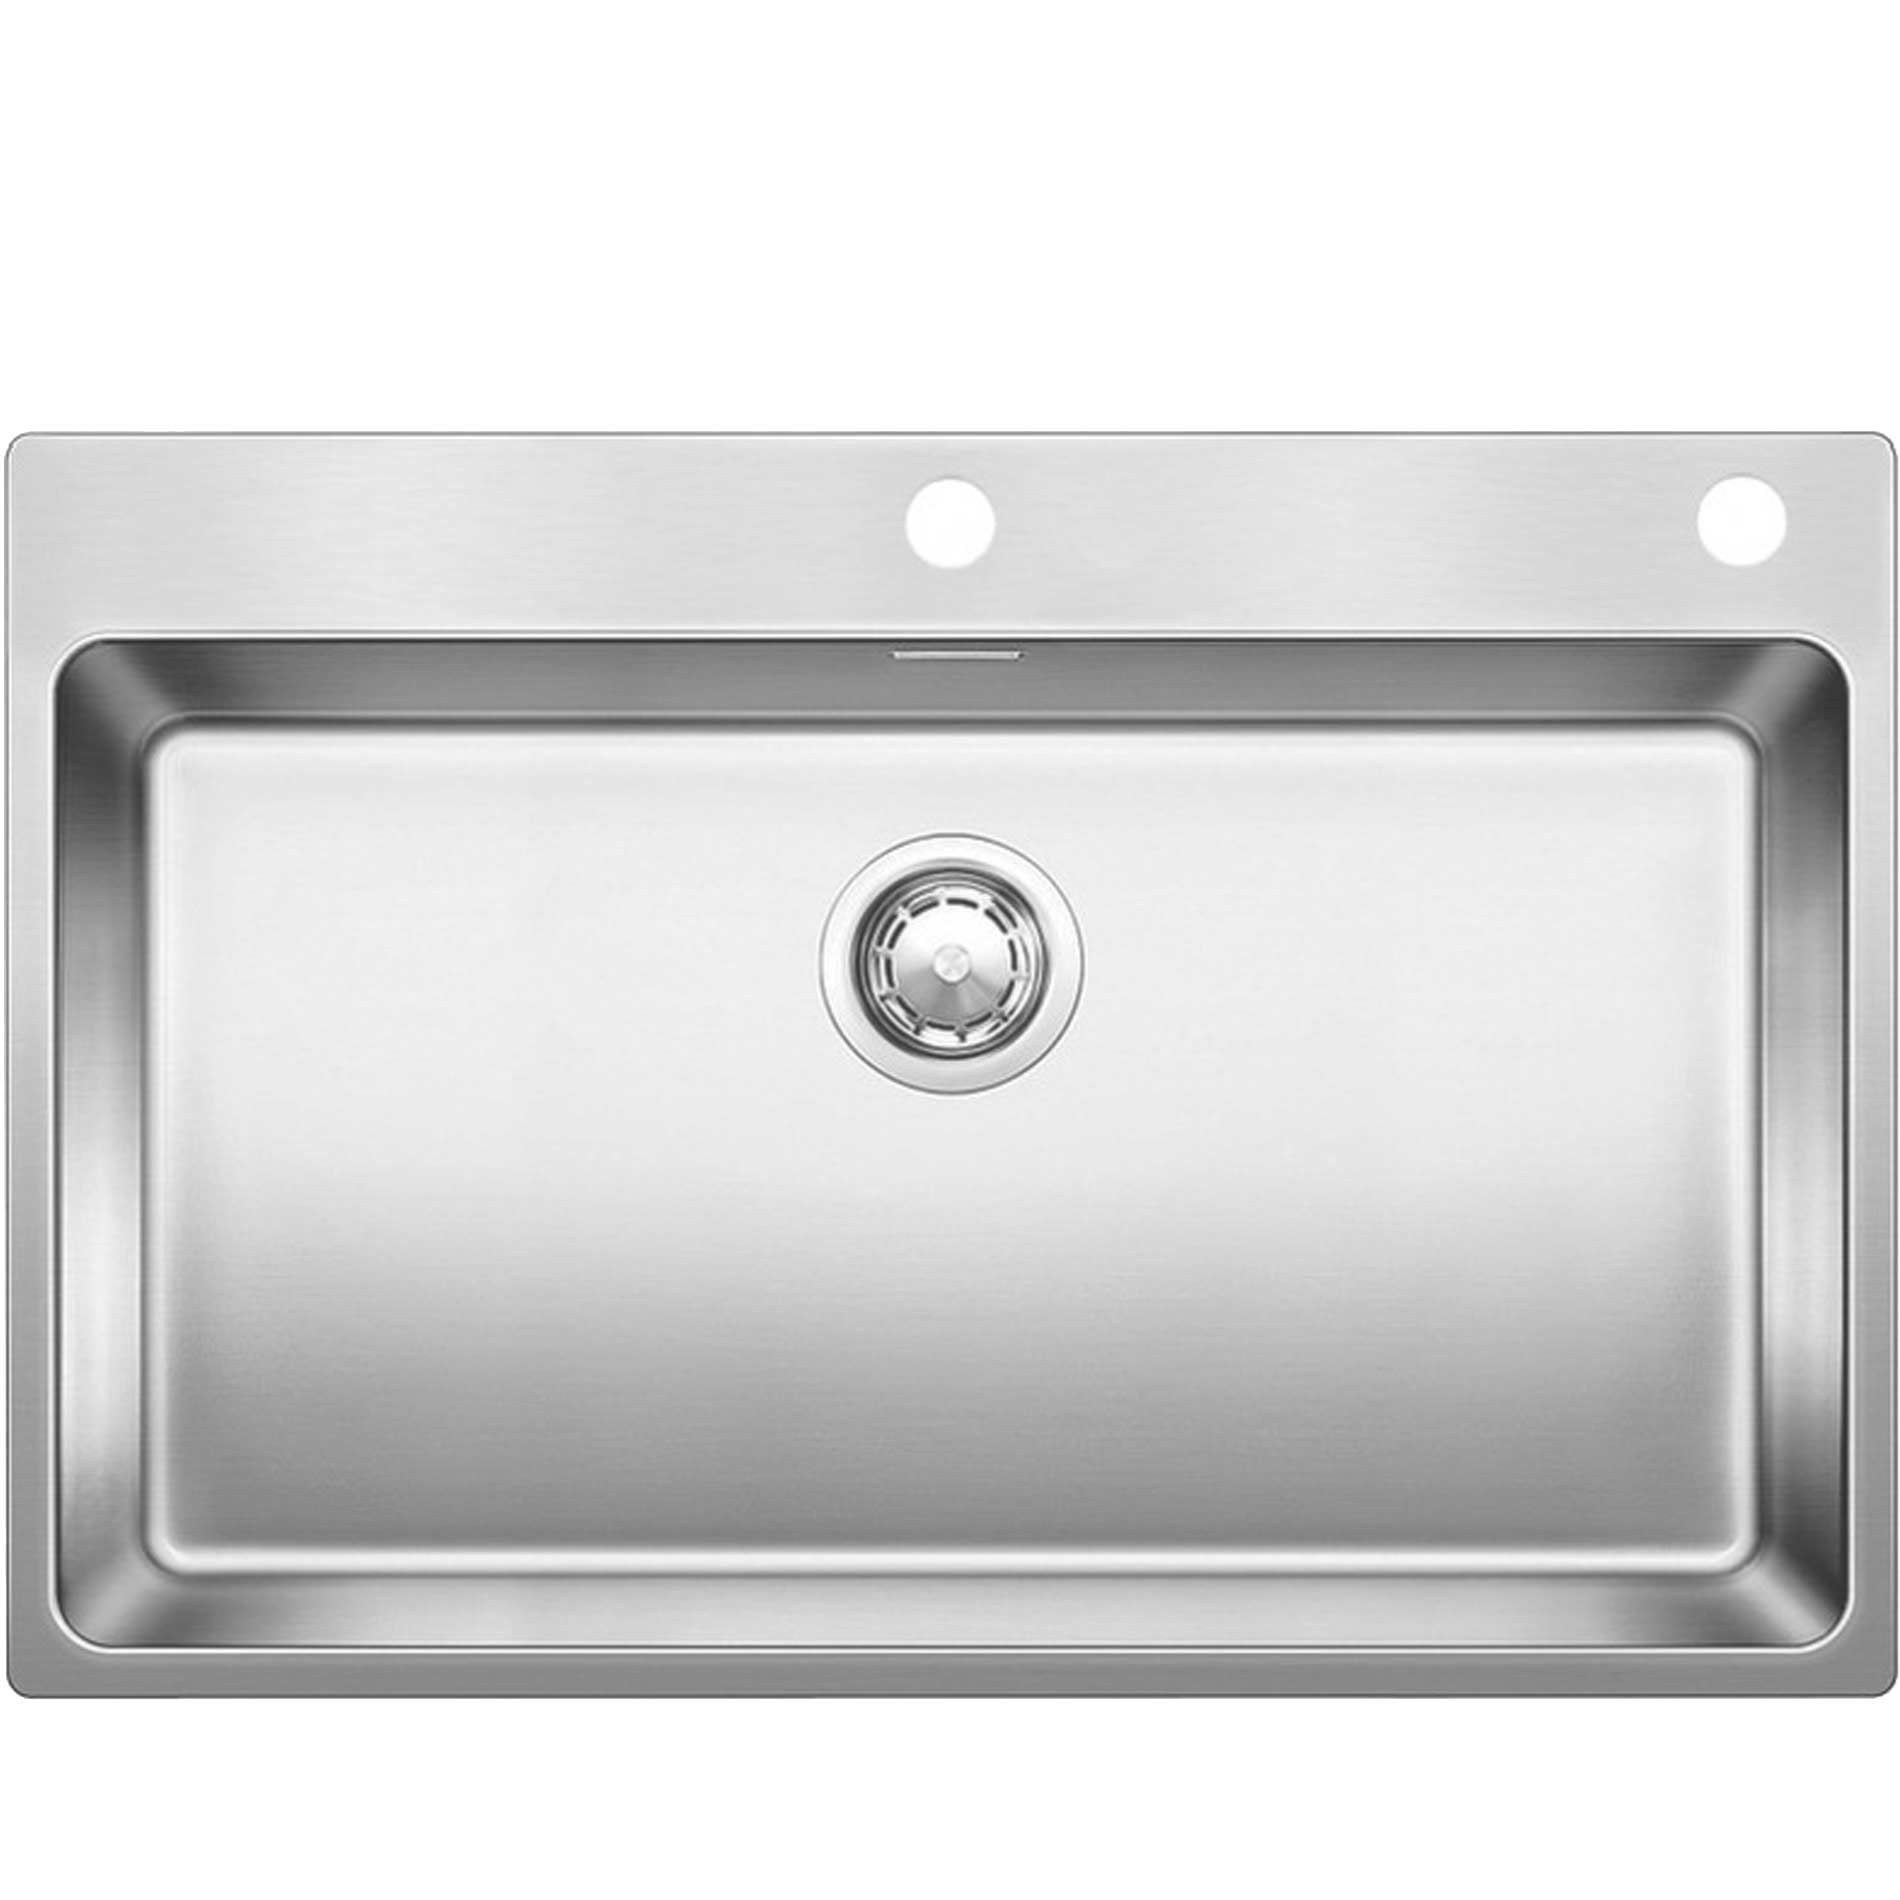 Picture Of Andano 700 IF/A Single Bowl SS Sink